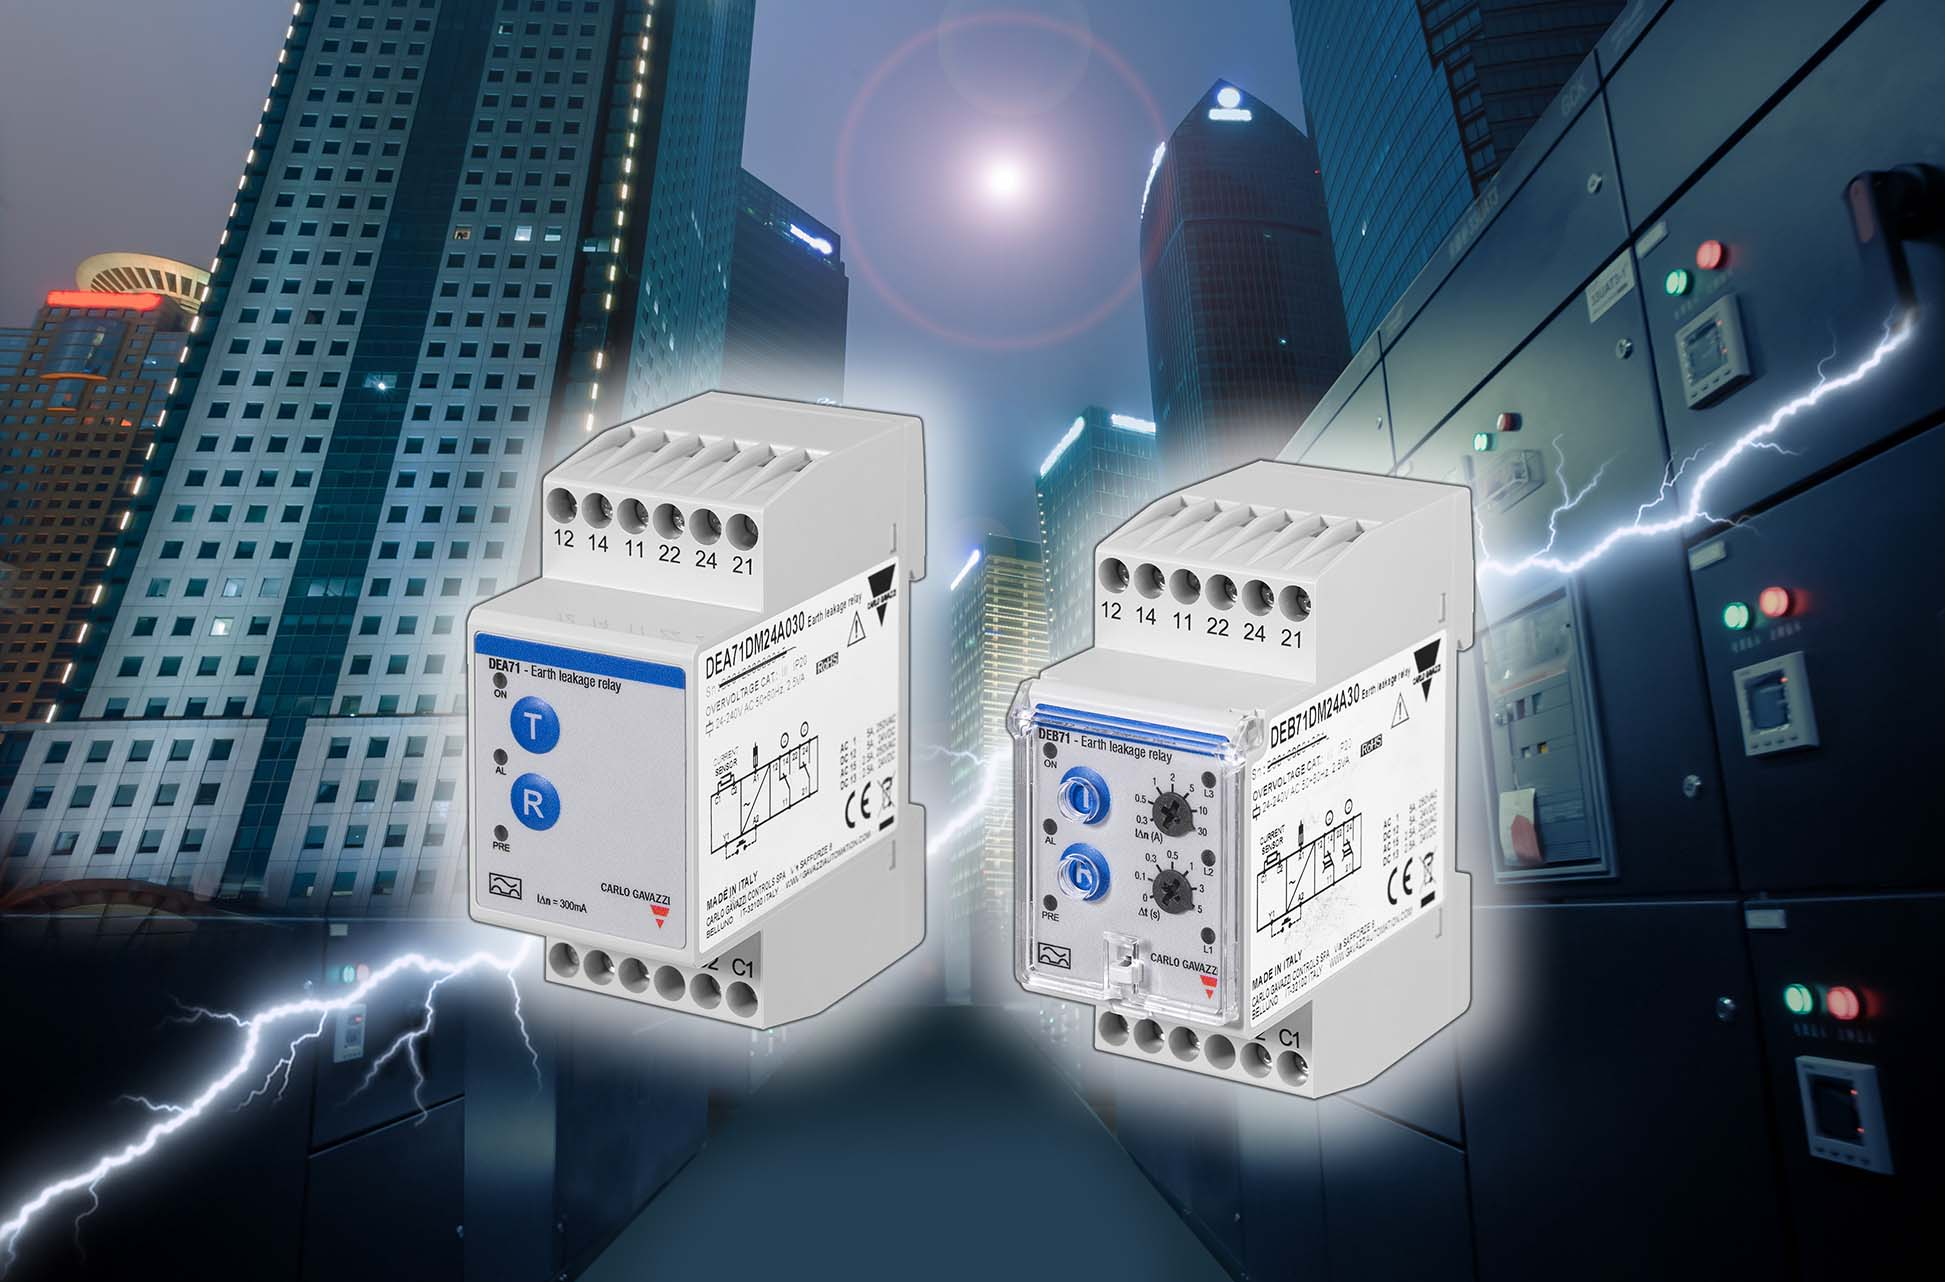 Earth Leakage Monitoring Relays Dea71 And Deb71 Solid State Relay Carlo Gavazzi Has Launched The Range Of Used To Detect Current Which Can Be Potentially